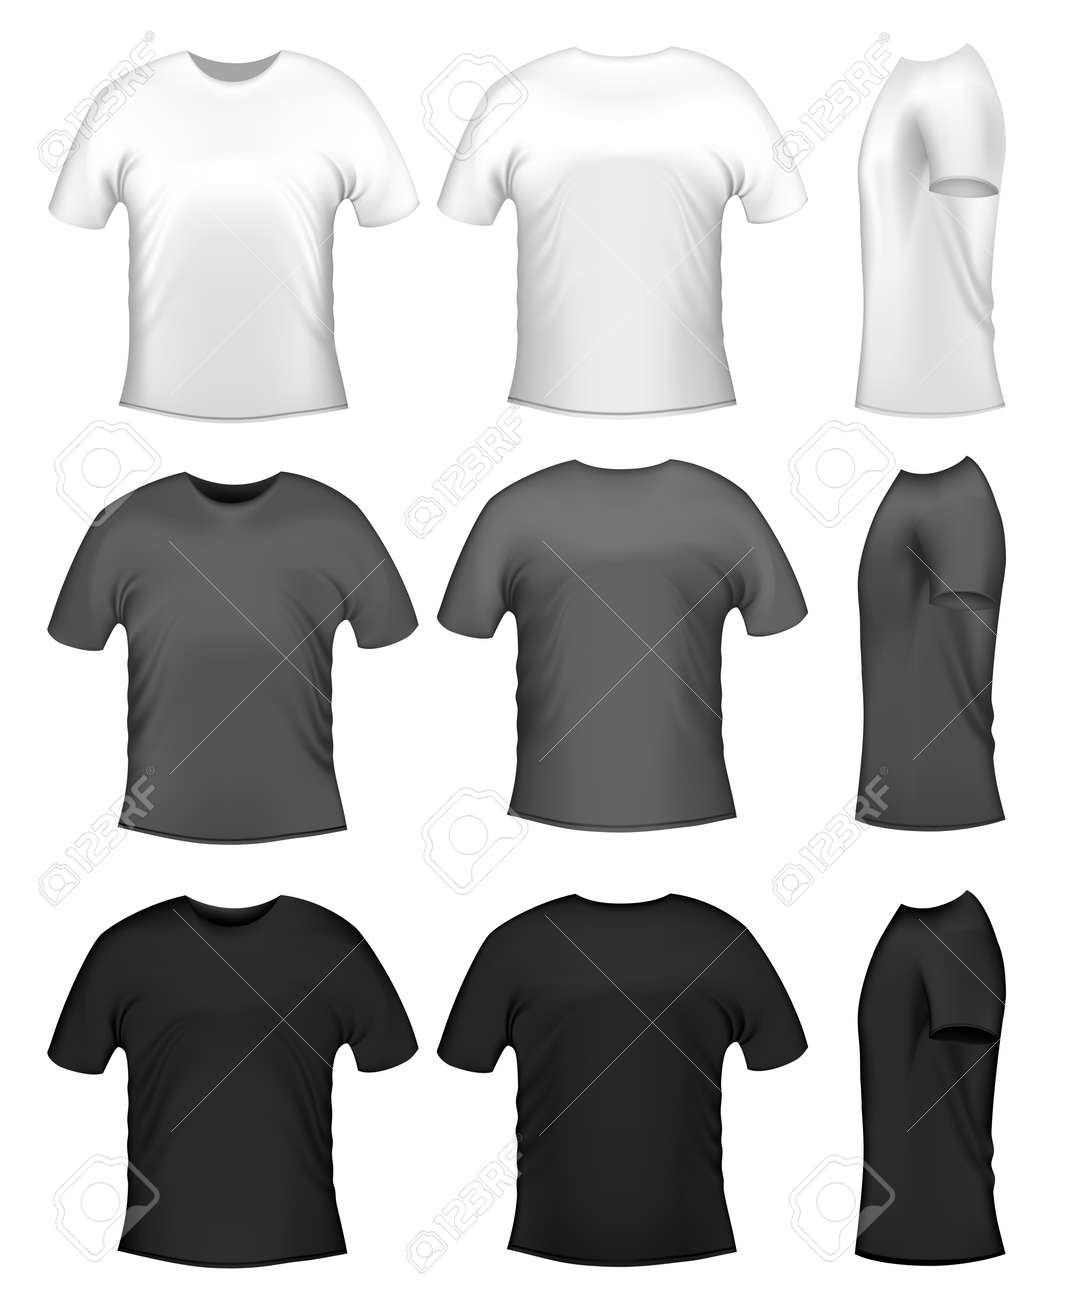 Black t shirt vector - Men S T Shits Collection Of Diferent Colors Royalty Free Cliparts